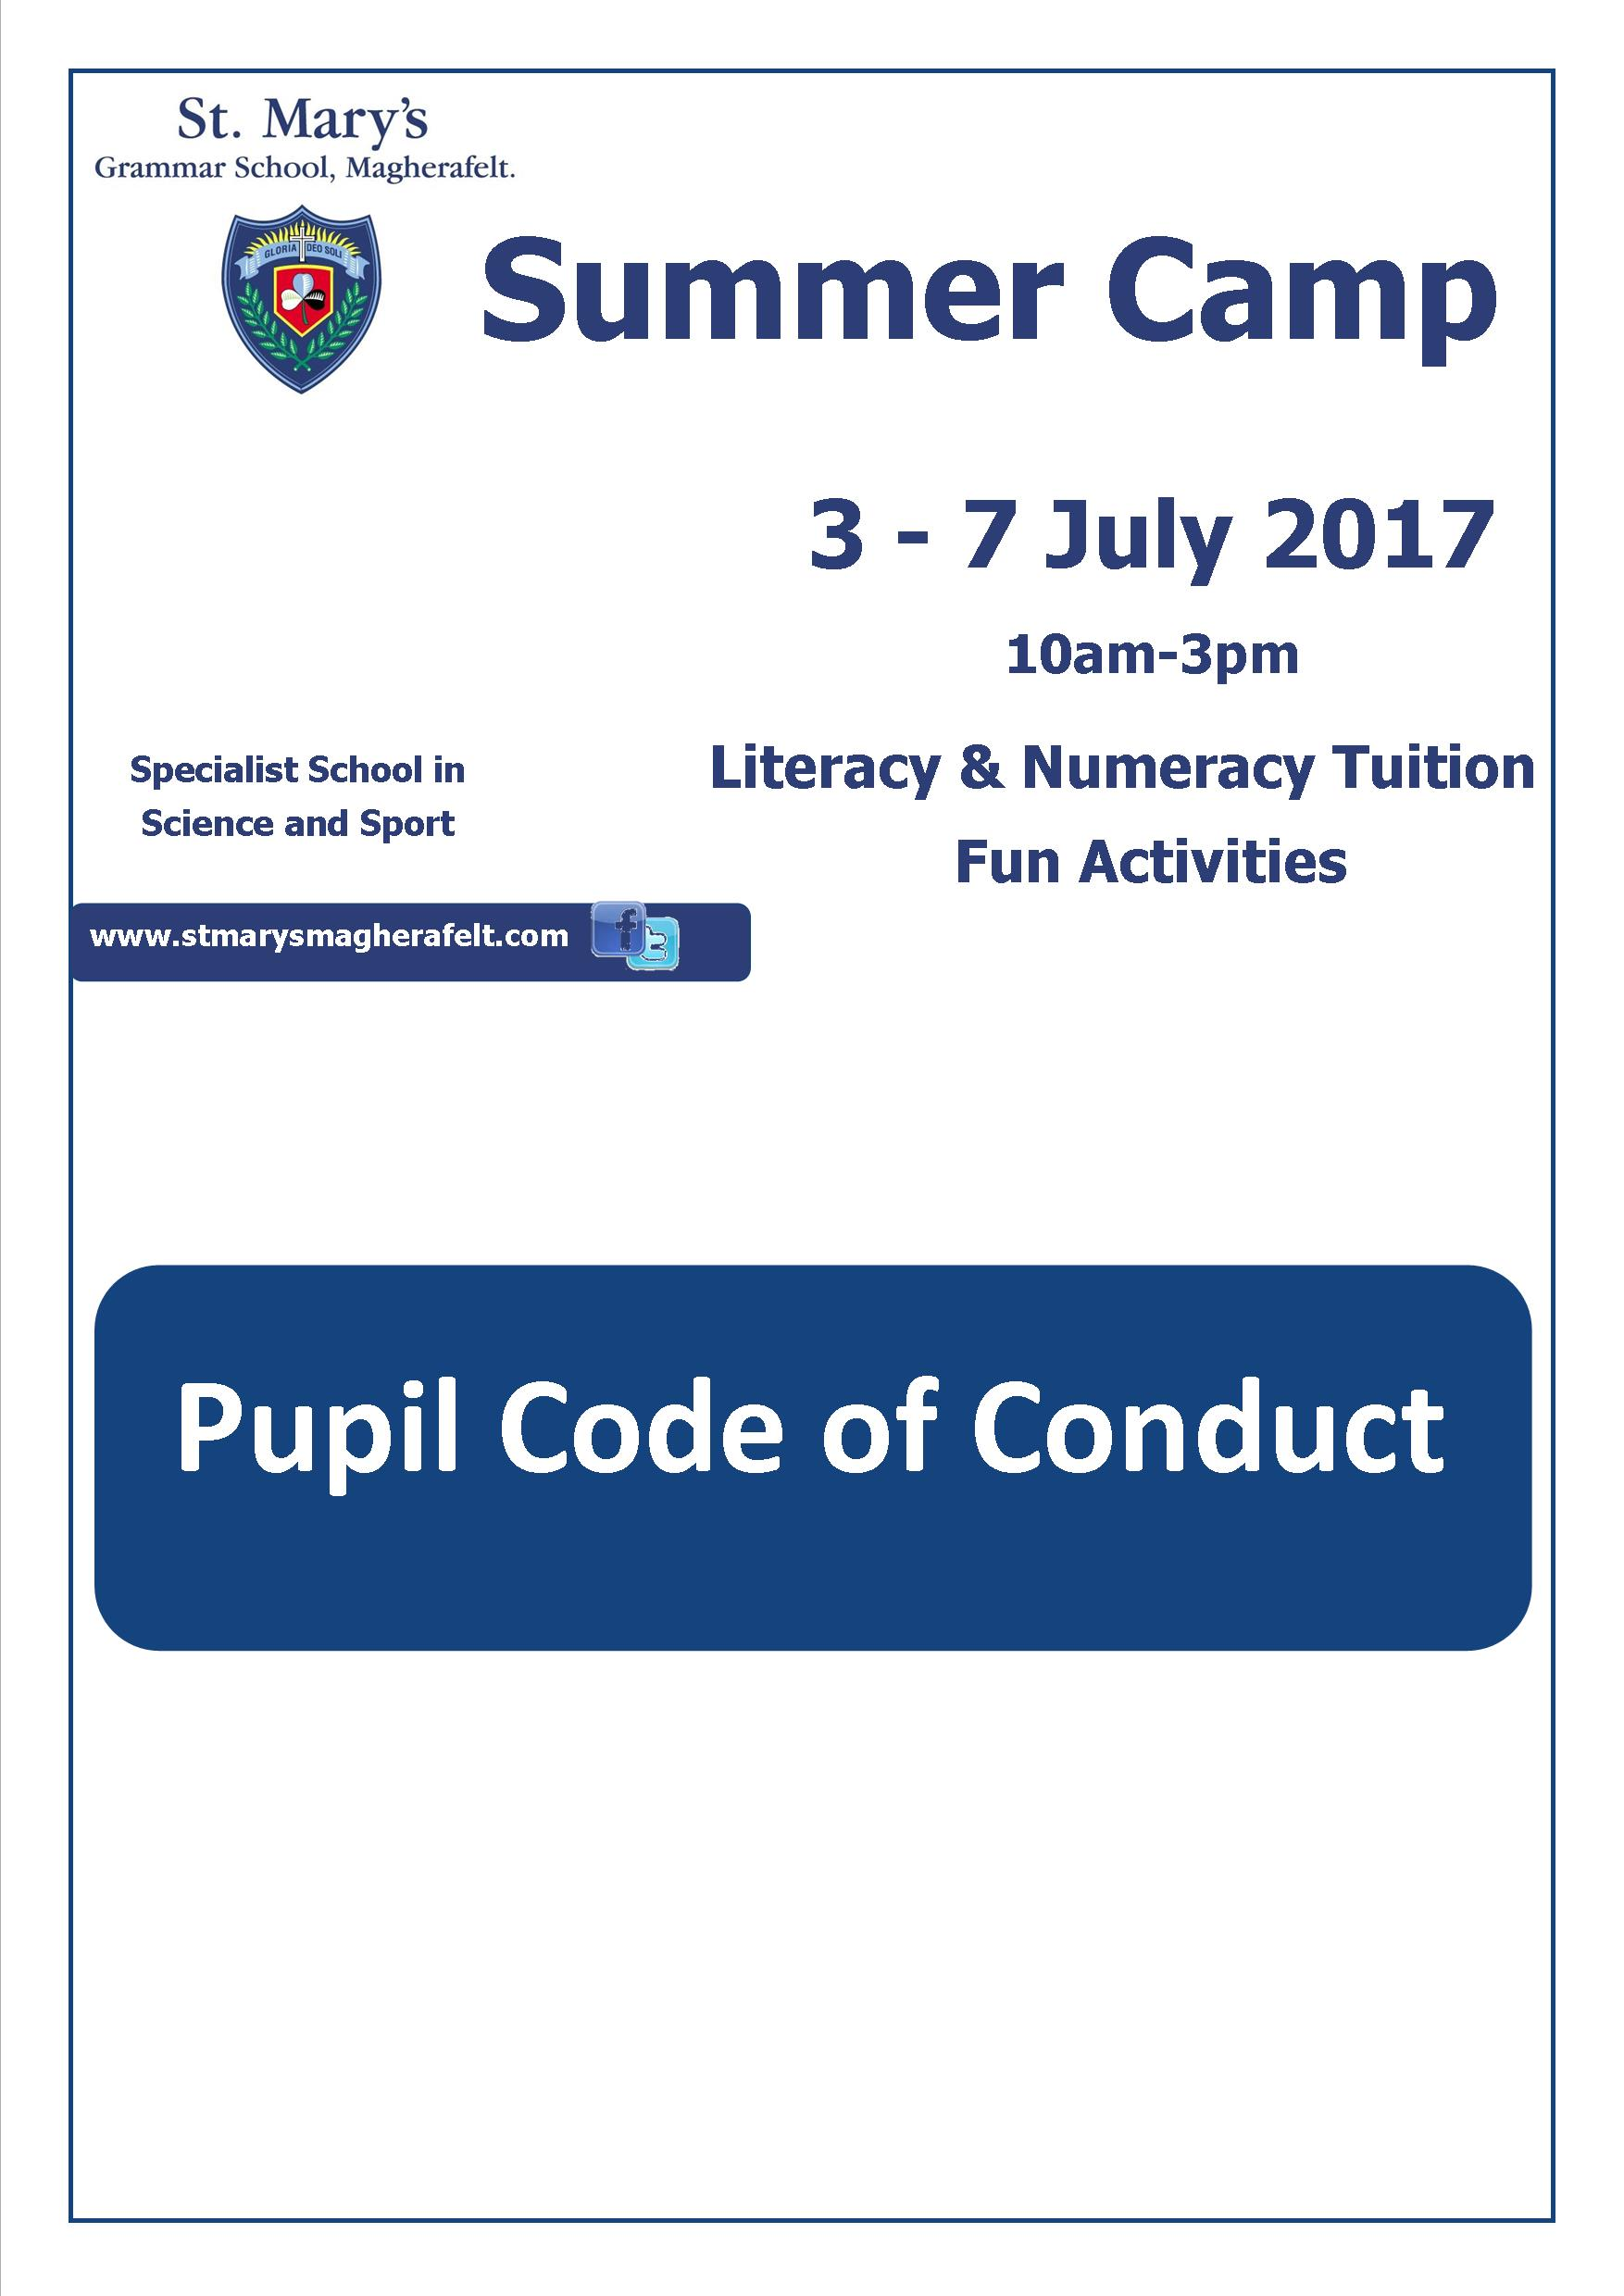 Summer Camp Pupil Code of Conduct